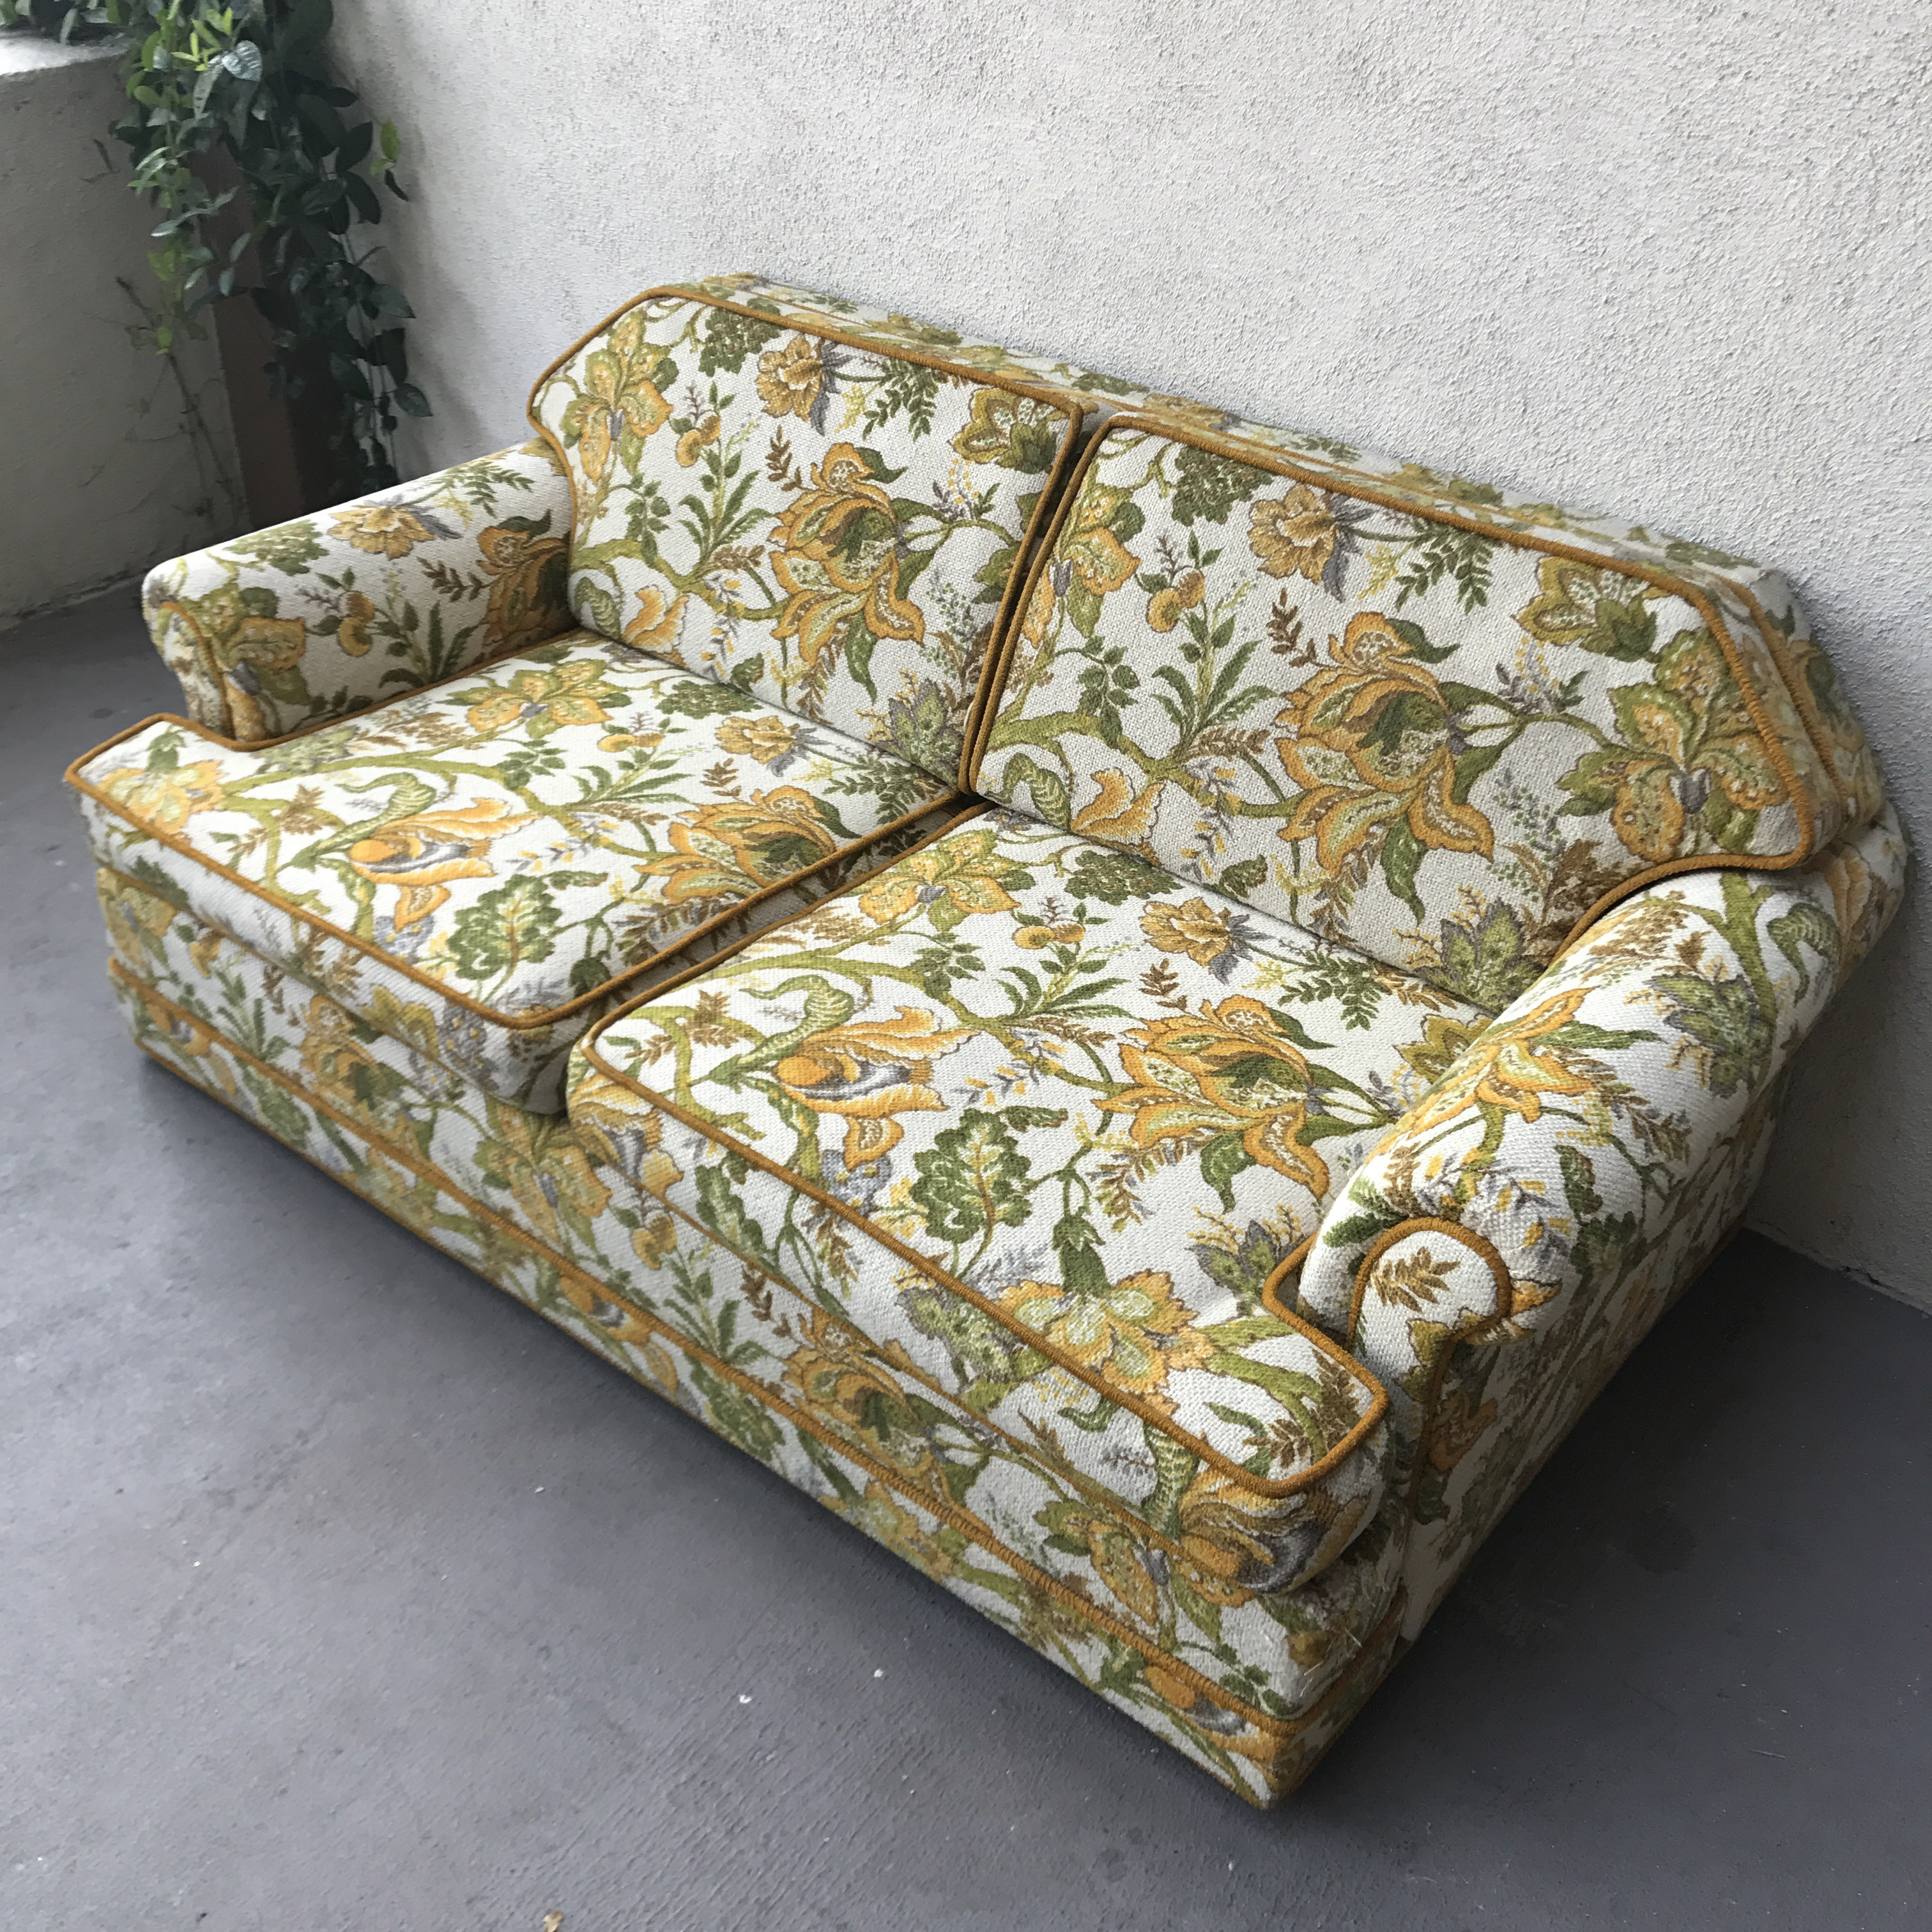 Floral Sofa vintage mid-century modern upholstered floral sofa | chairish